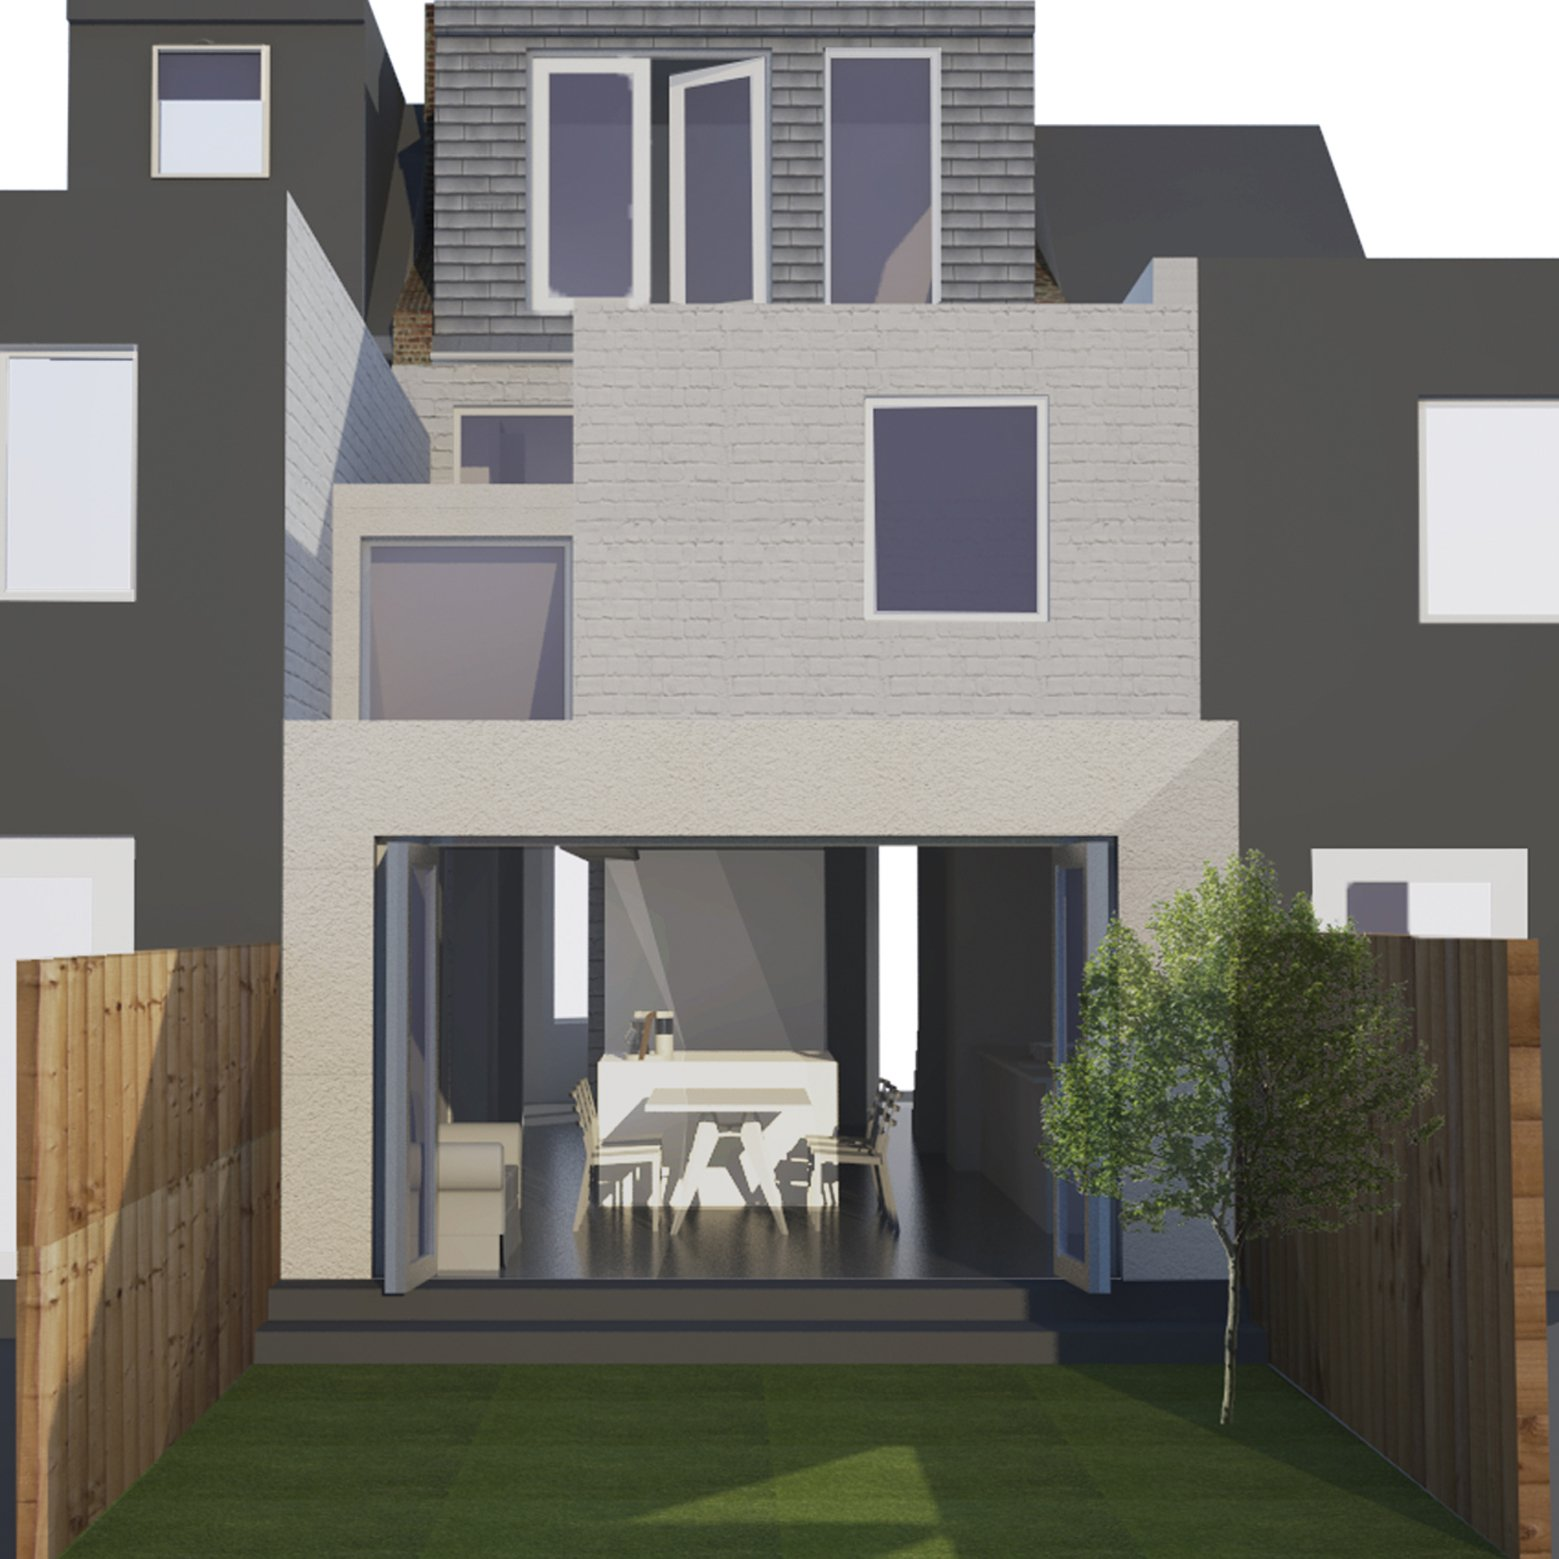 Architect designed house extension West Hampstead Camden NW6 – 3D visual 200x200 Finchley Road, Camden NW3 | Flat extension